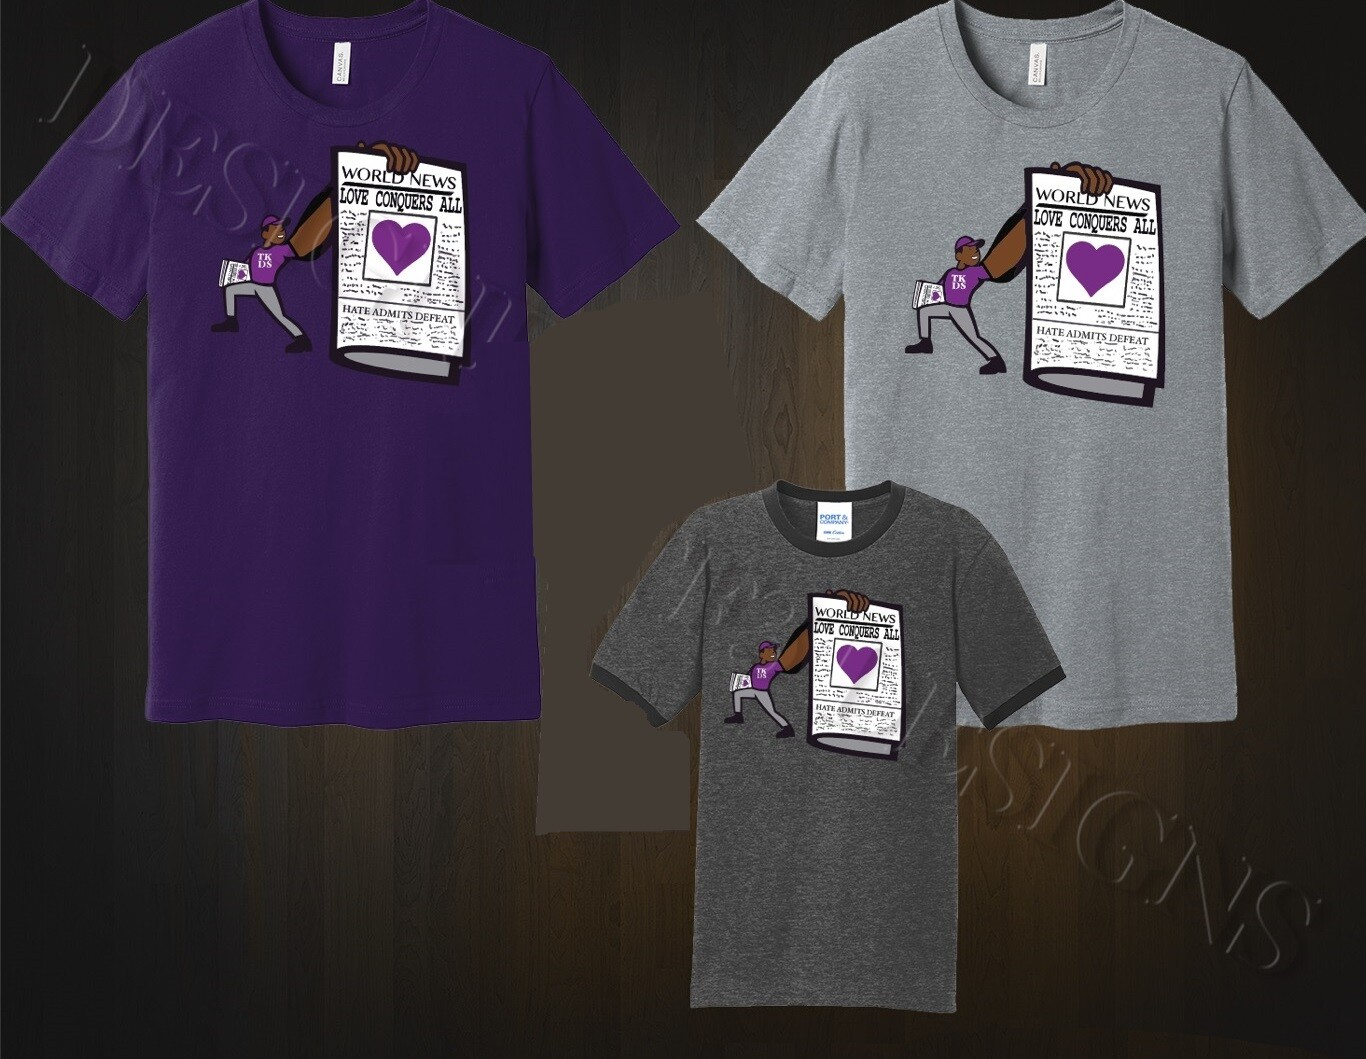 News: Love Conquers All Tee